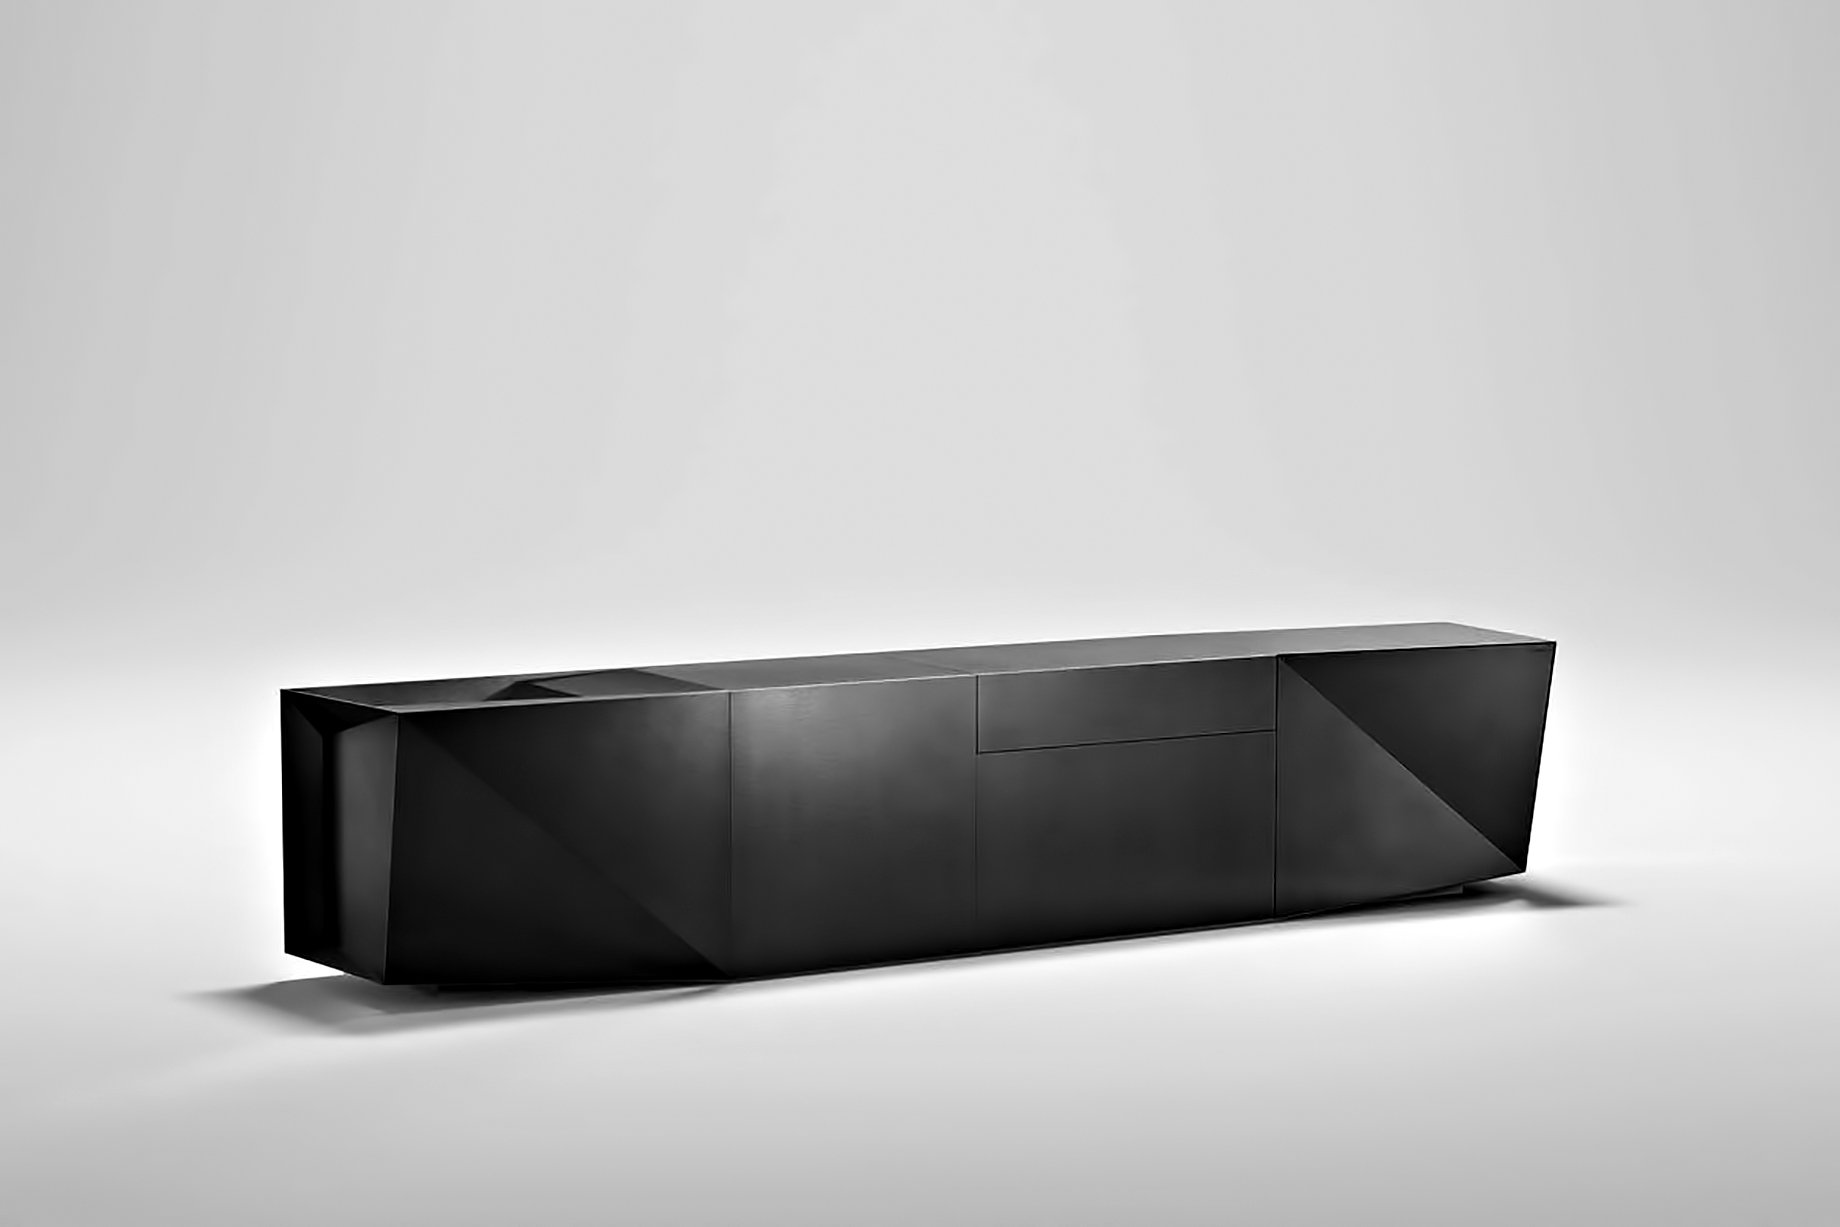 Iconic Steininger FOLD High Tech Kitchen Block Design Inspired by Origami – Forceful Black